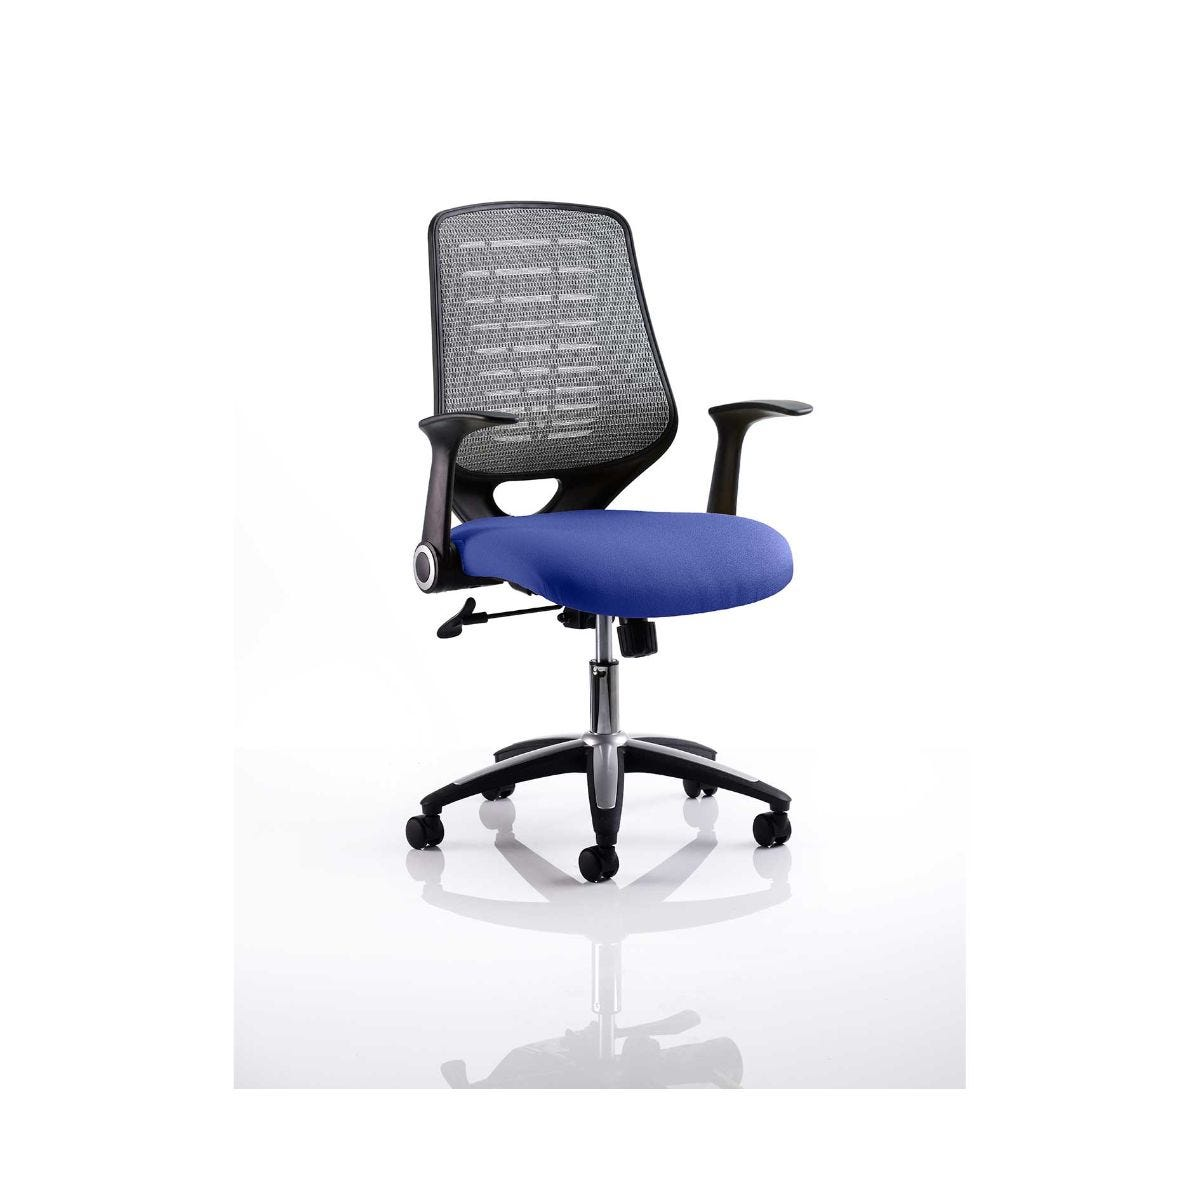 Relay Mesh Back Office Chair Silver, Serene